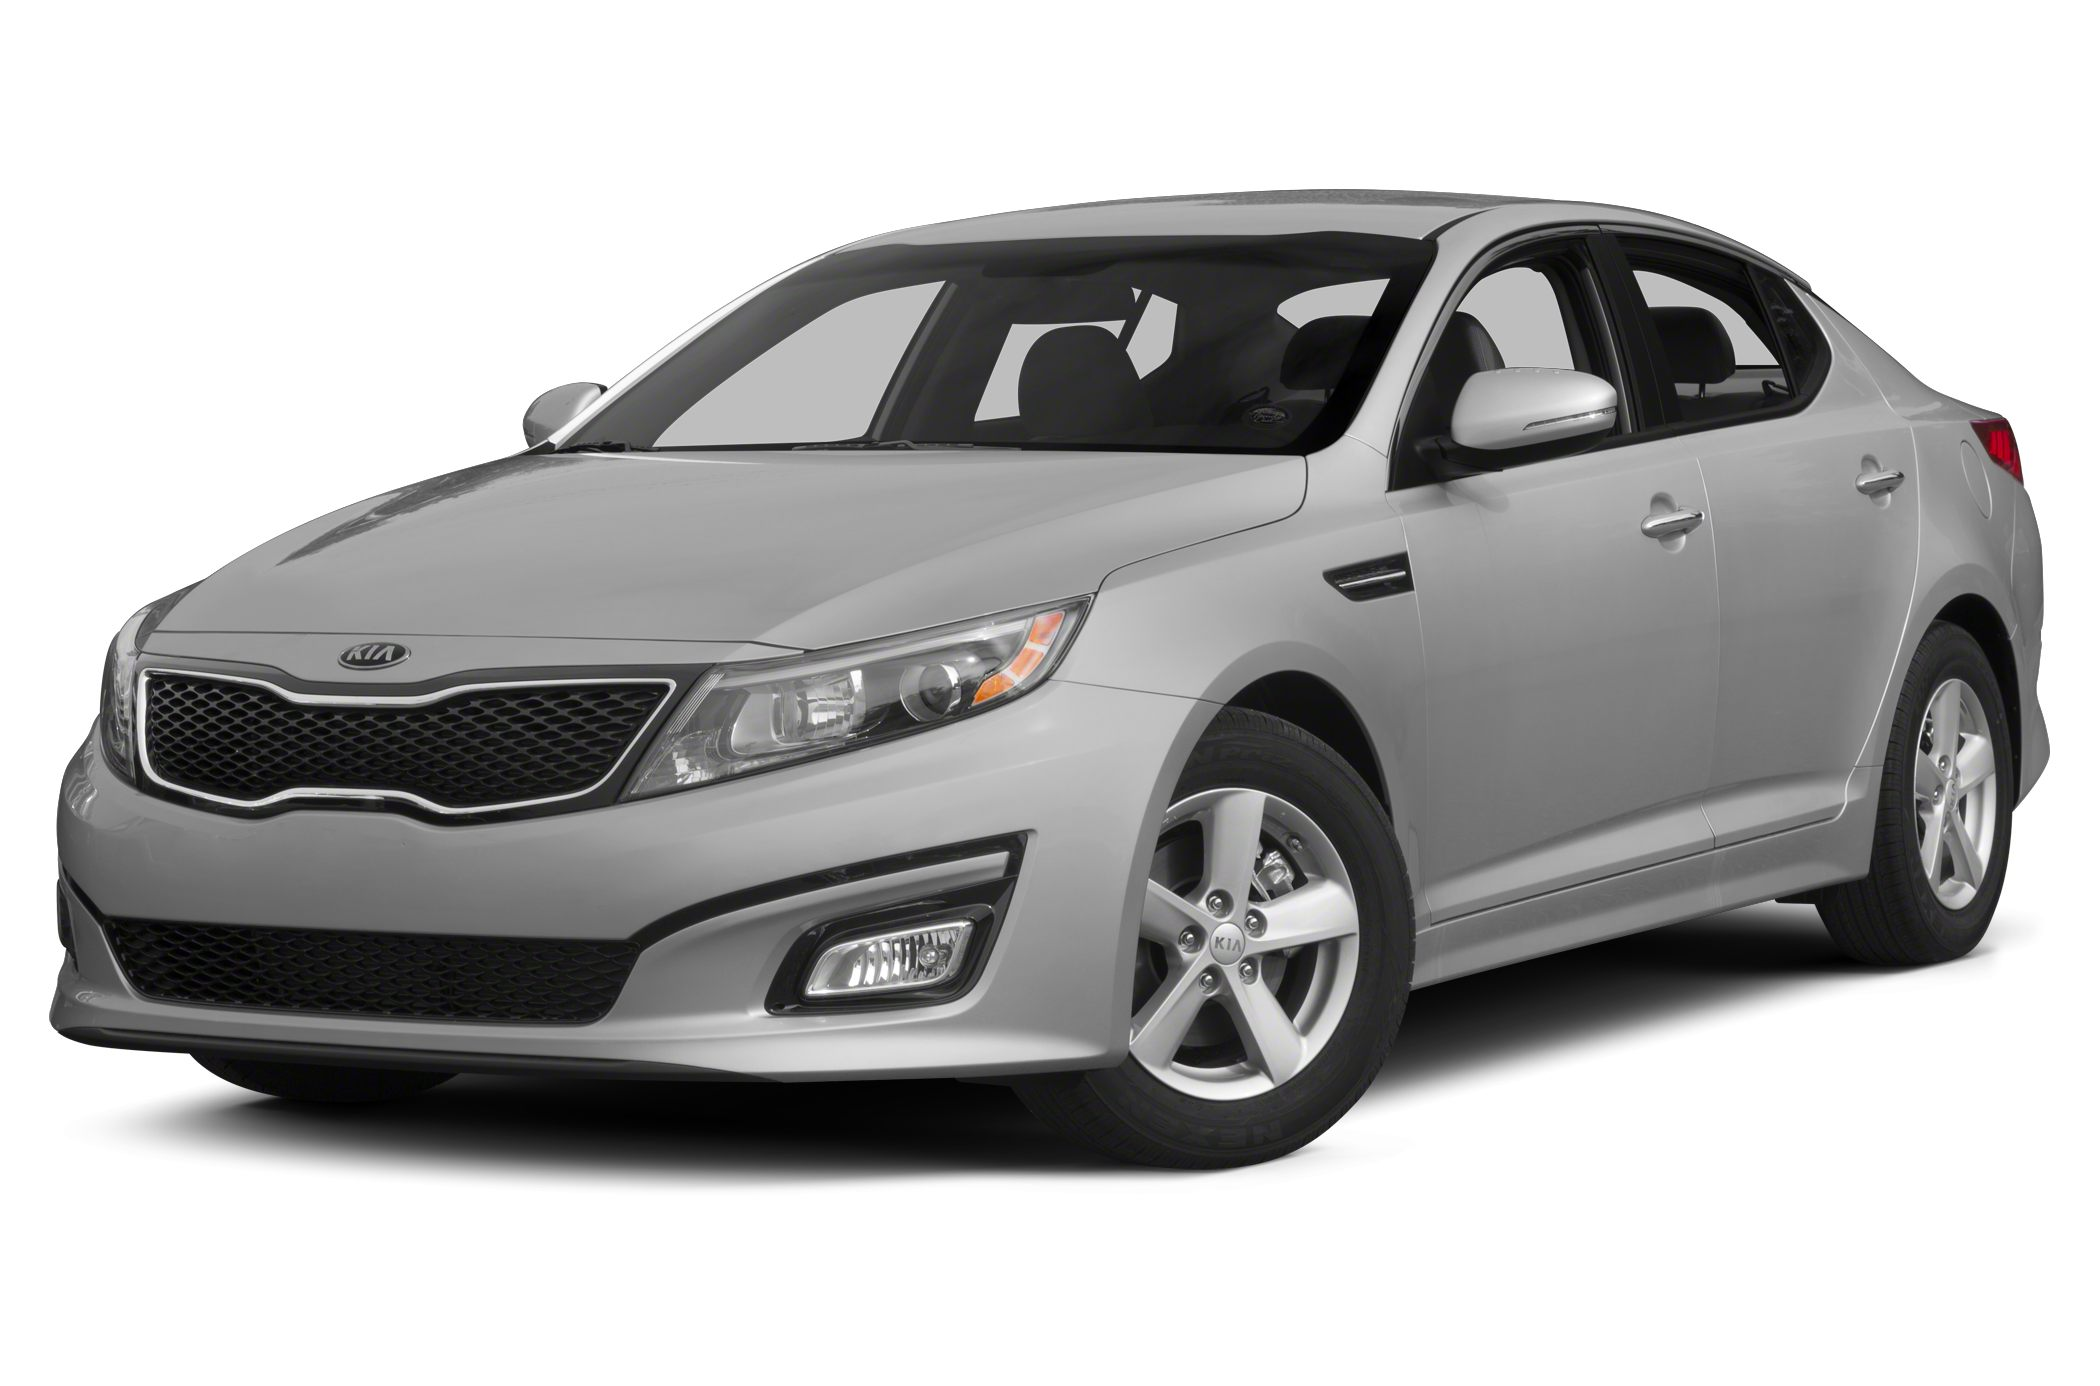 2015 Kia Optima LX New Arrival This Kia Optima is Certified Preowned CARFAX 1-Owner This model